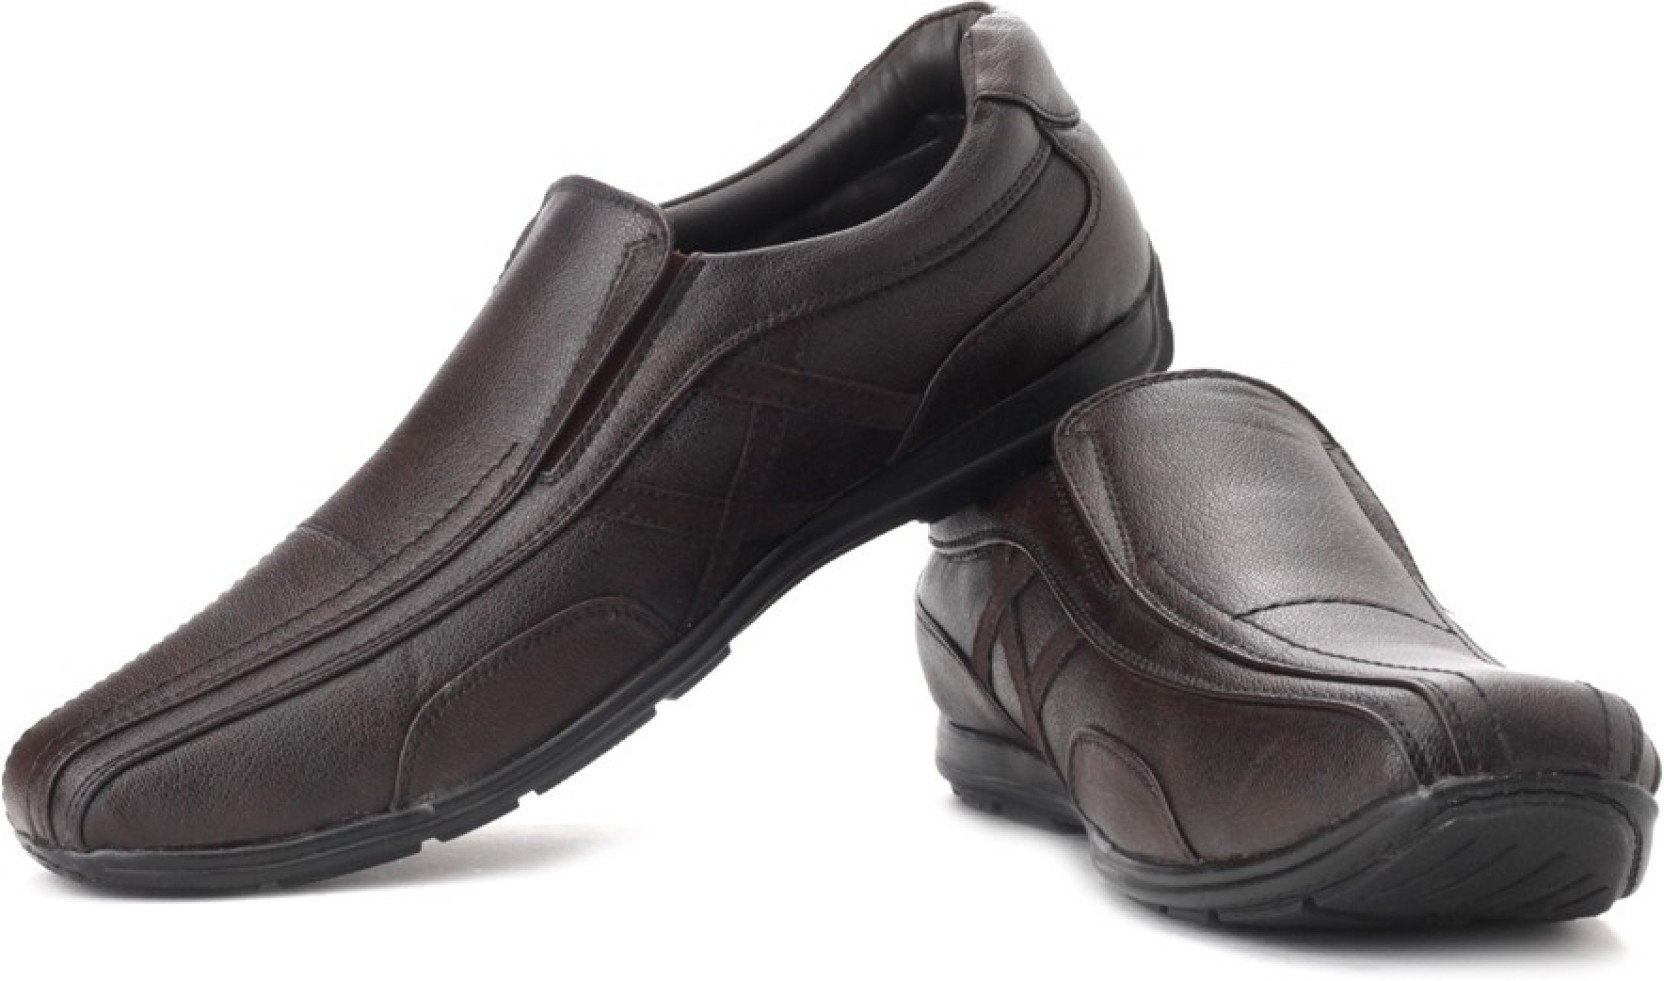 Buy Bata Shoes Online Uk